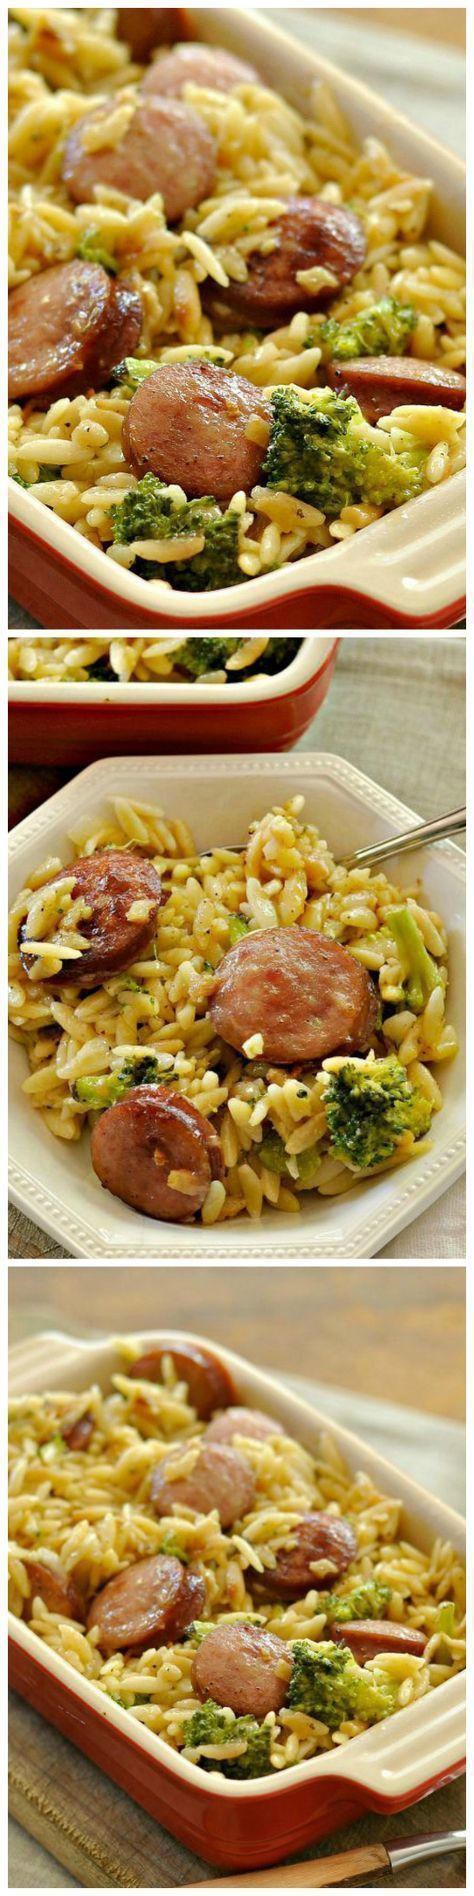 Zo S Kitchen Chicken Orzo check out smoked sausage and cheesy orzo. it's so easy to make